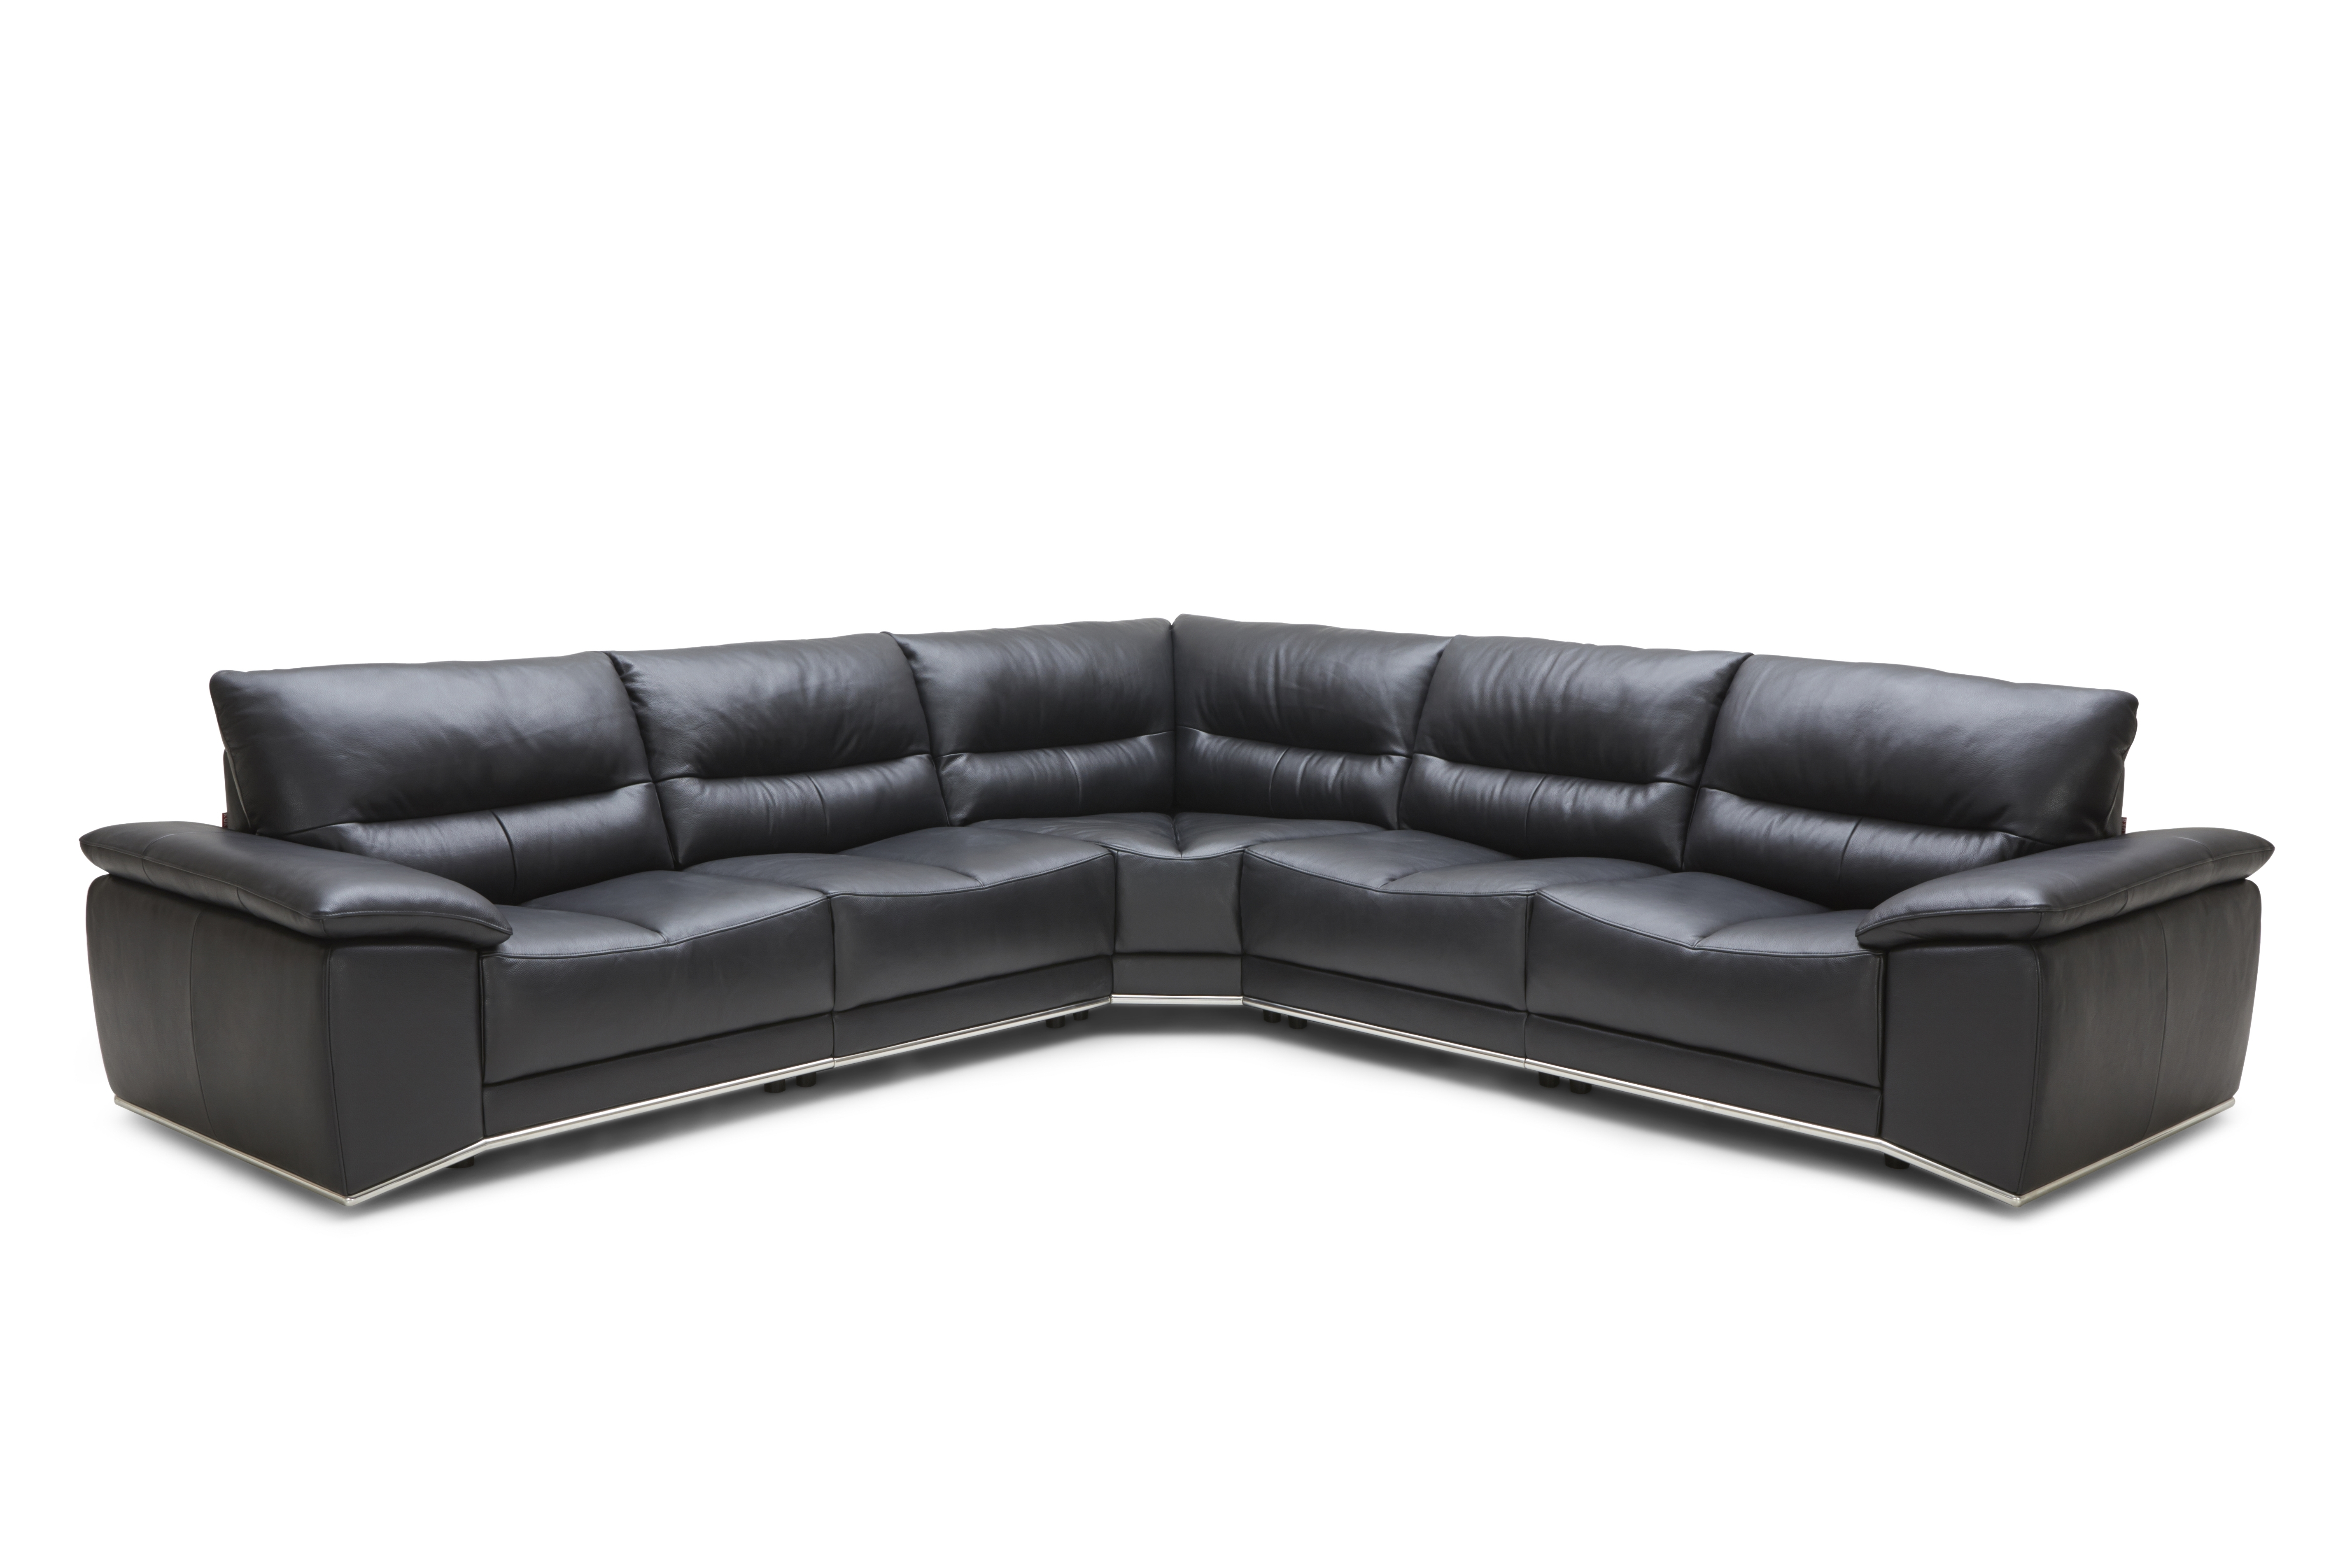 Sectional Furniture Toronto | Cheap Sectional Sofas Toronto For Sectional Sofas In Toronto (View 7 of 10)